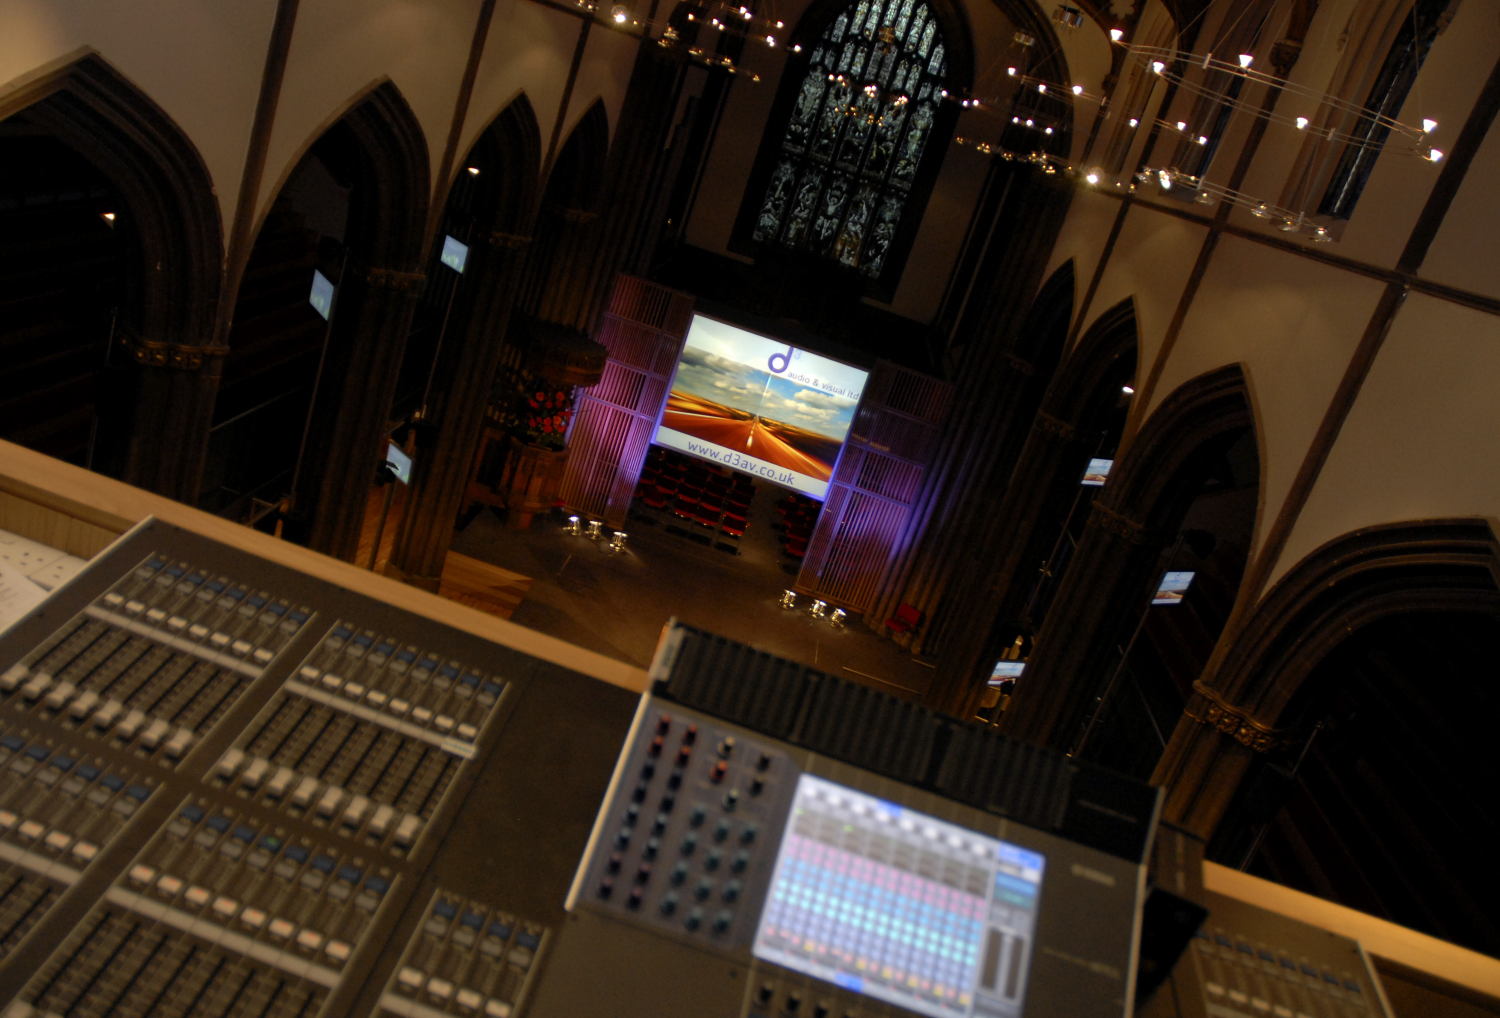 Church Audio and Visual